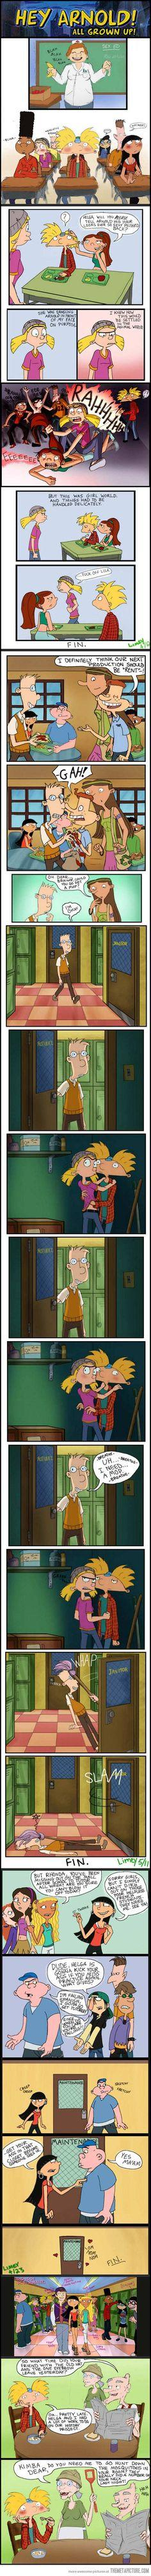 Hey Arnold characters as teenagers